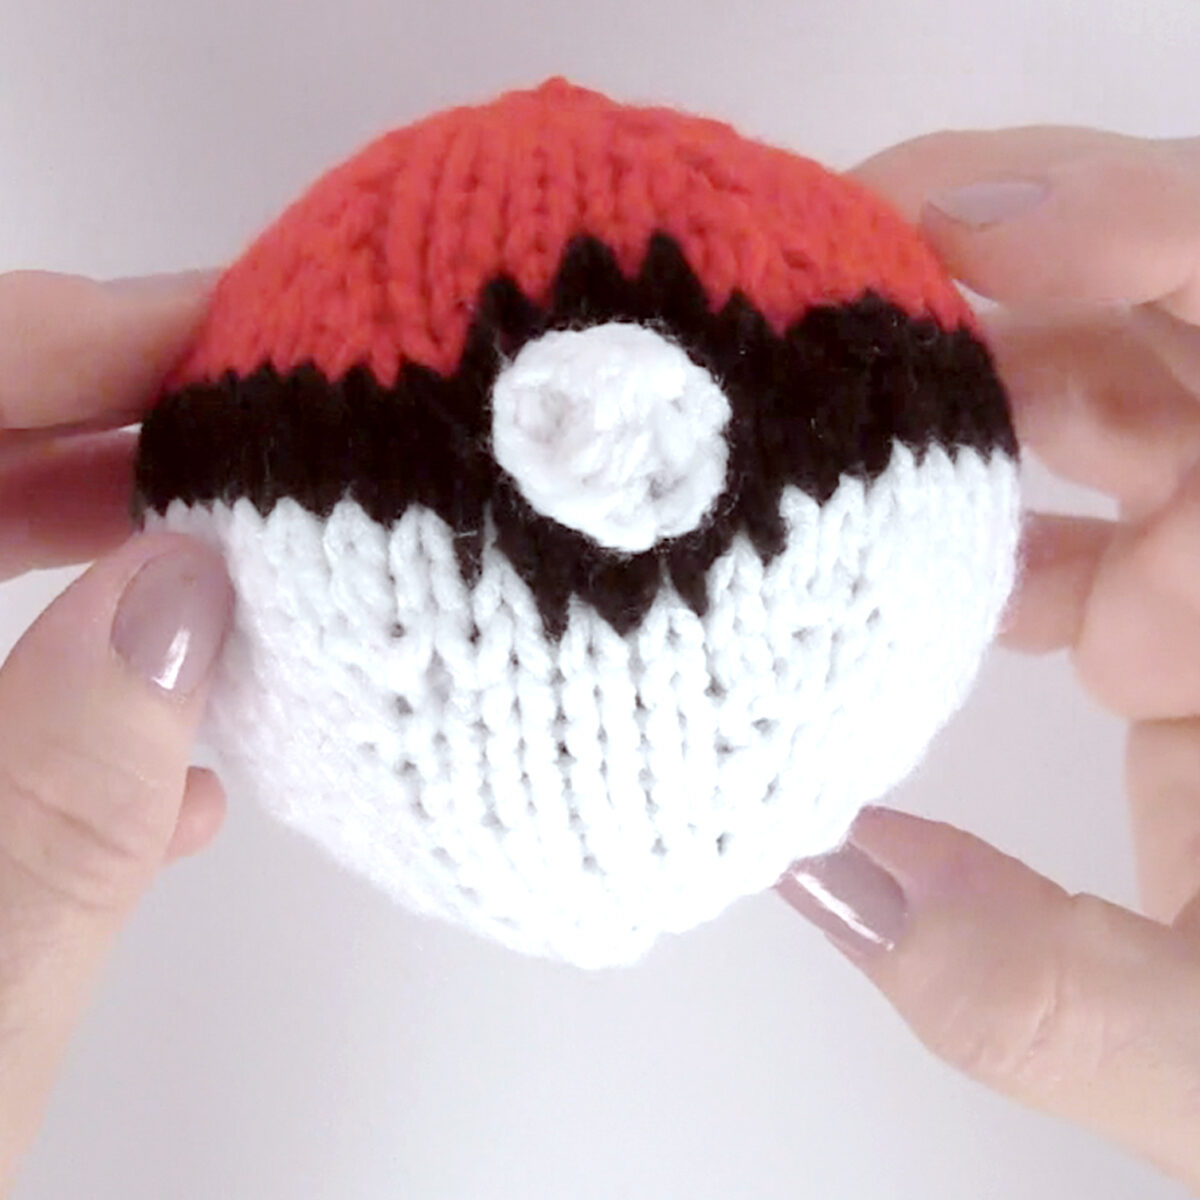 Knitted Poke Ball in white, red, and black yarn colors held by two hands.